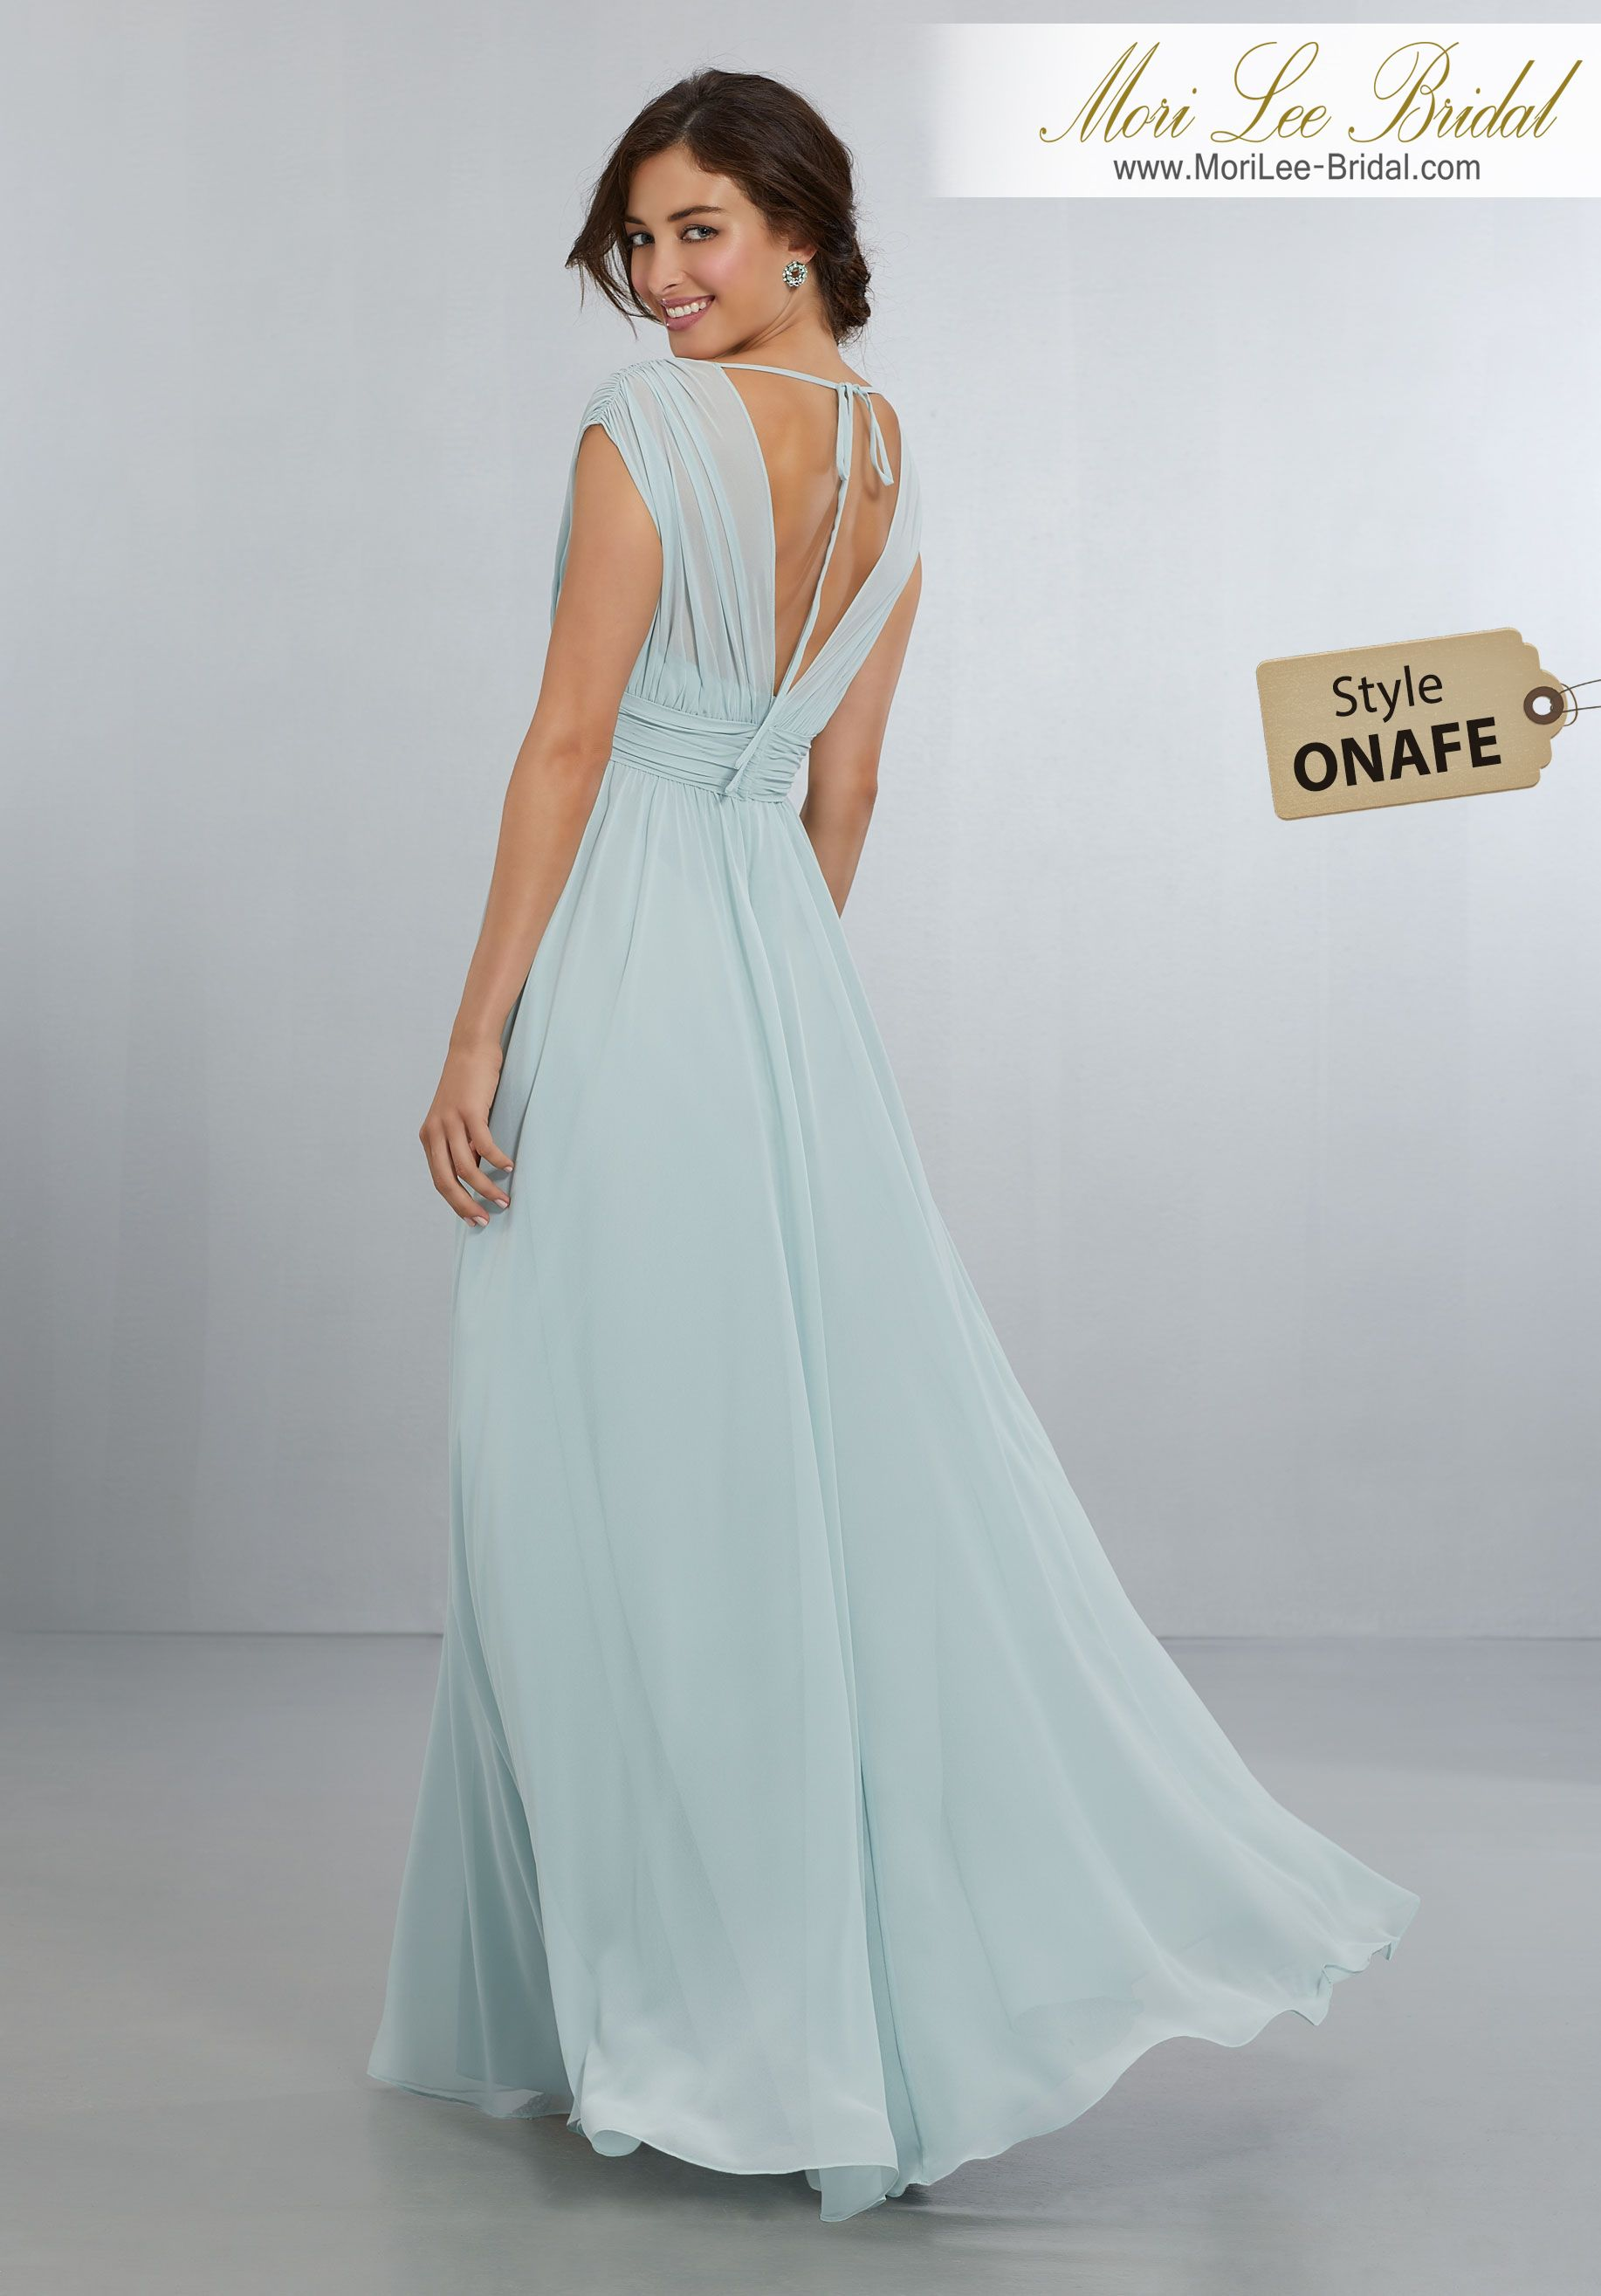 Style onafe chiffon bridsmaids dress with vneckline and tie vback